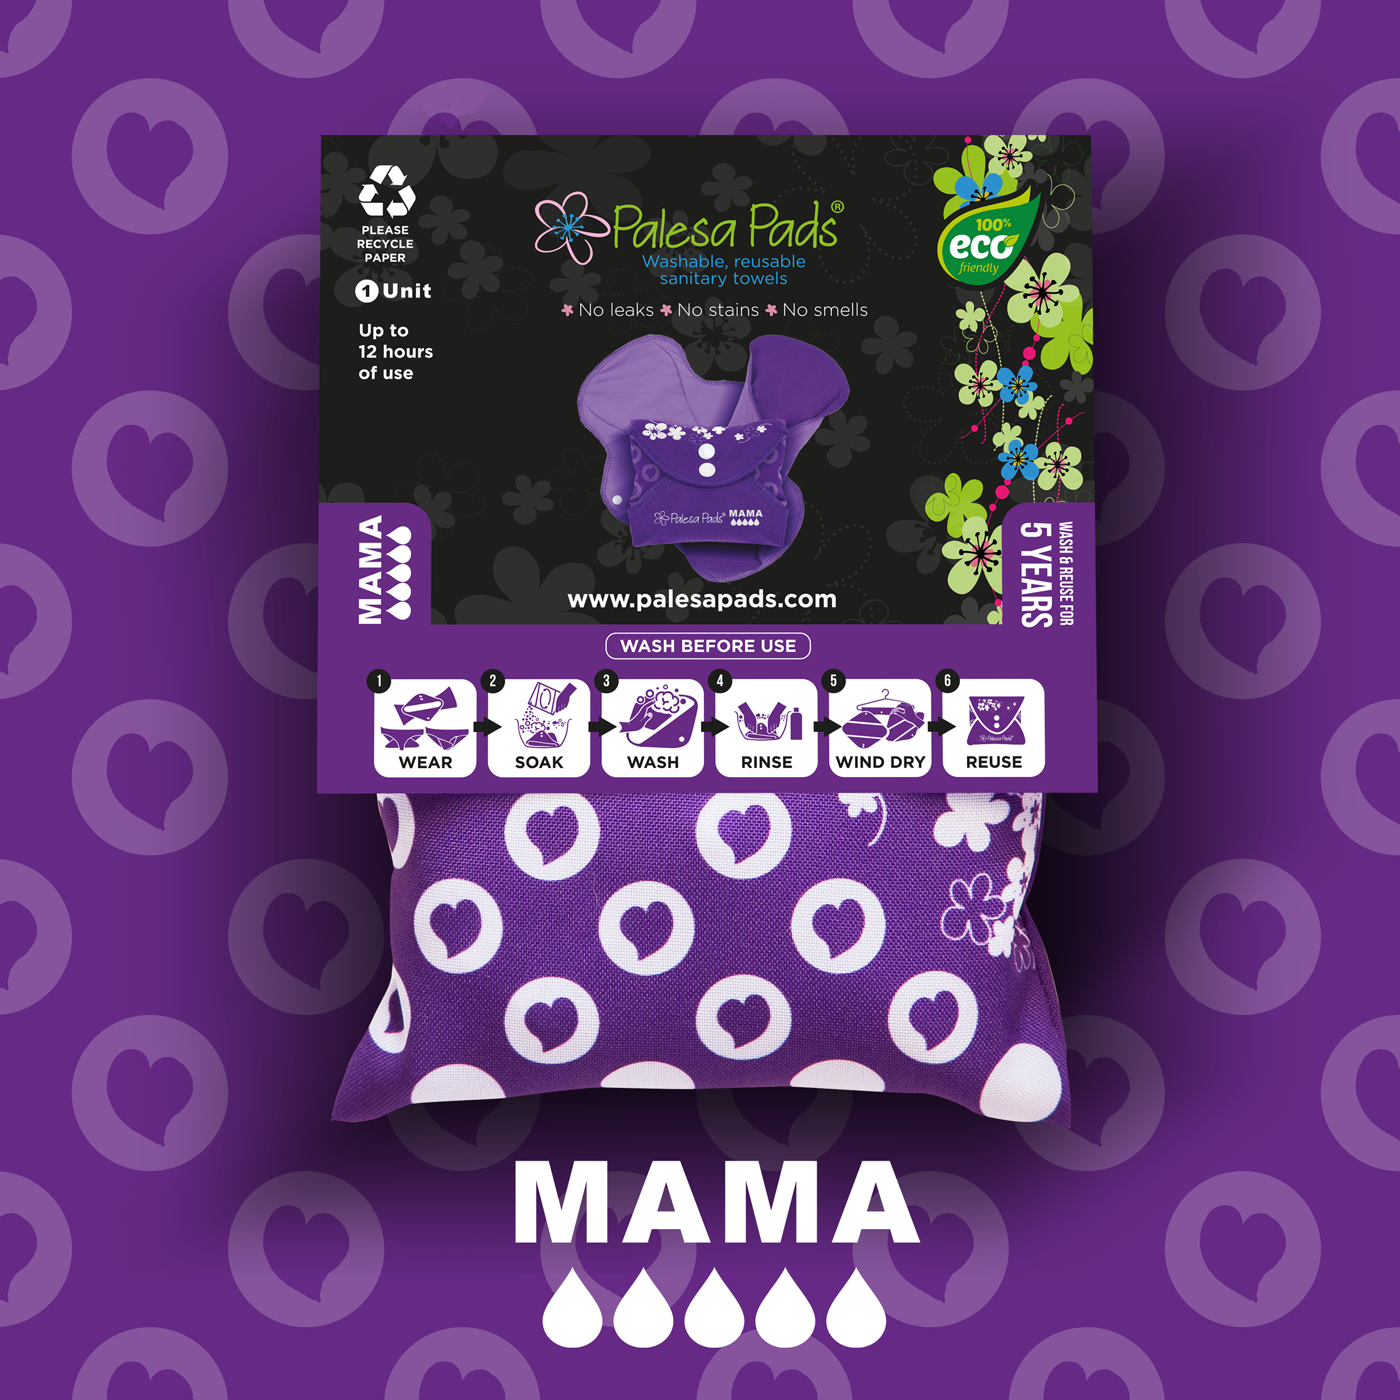 6554-PalesaPads-DS-Isolated-Products-MAMA